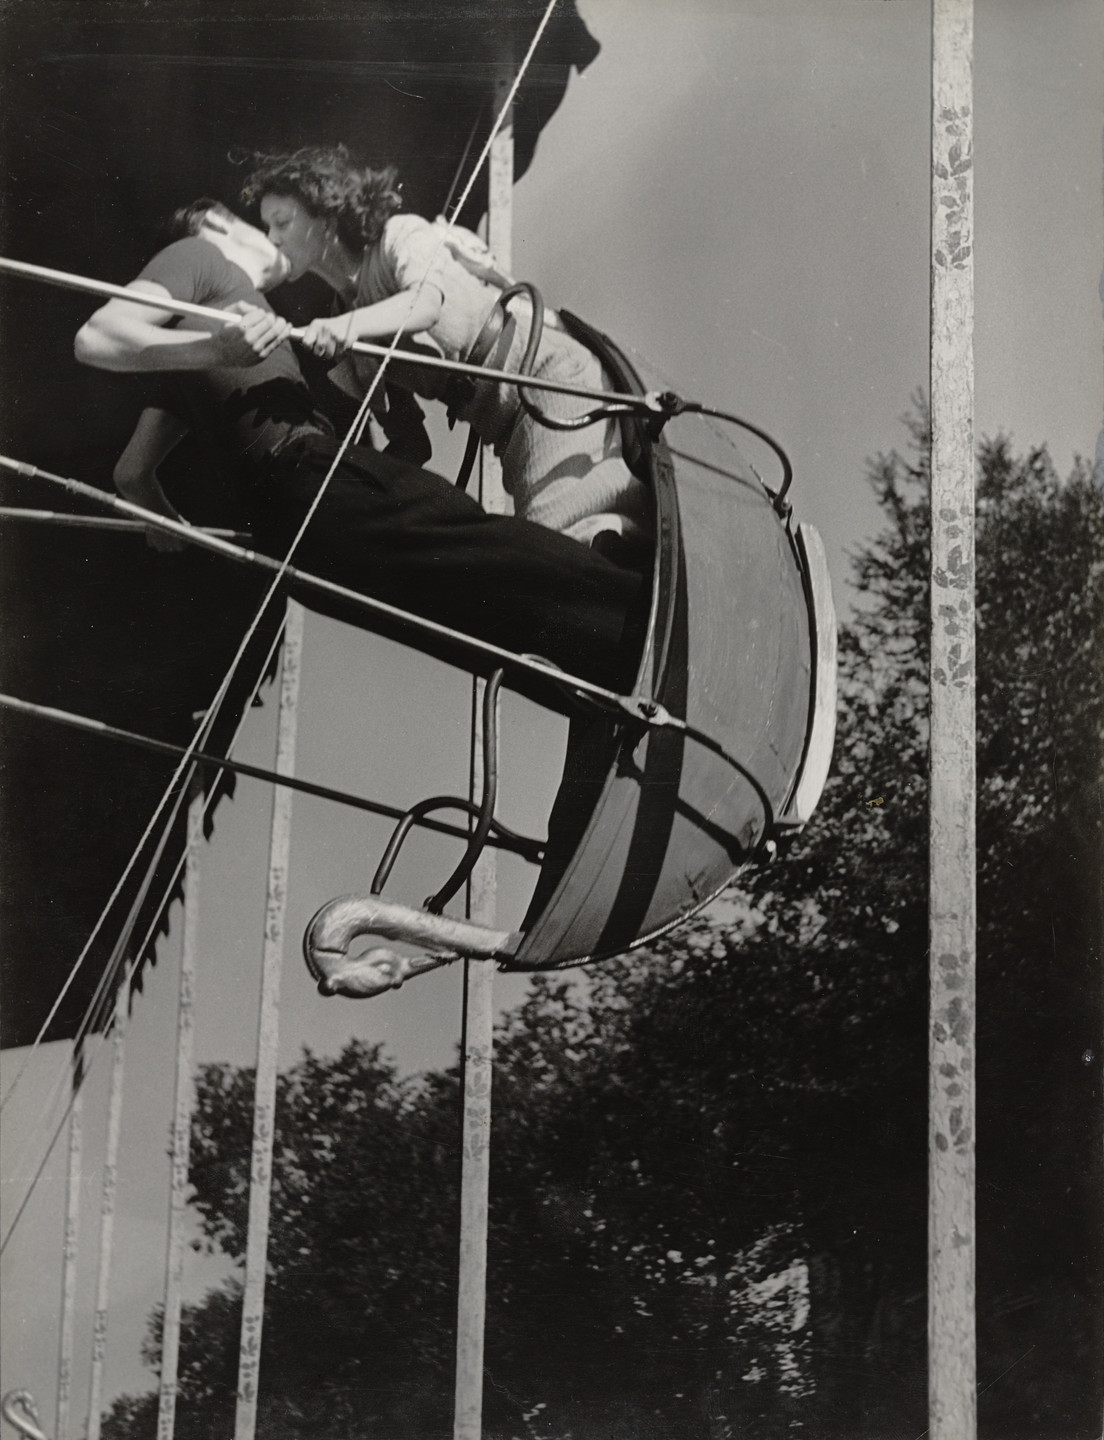 Brassaï (Gyula Halász). Kiss on a Swing at a Street Fair. c. 1936